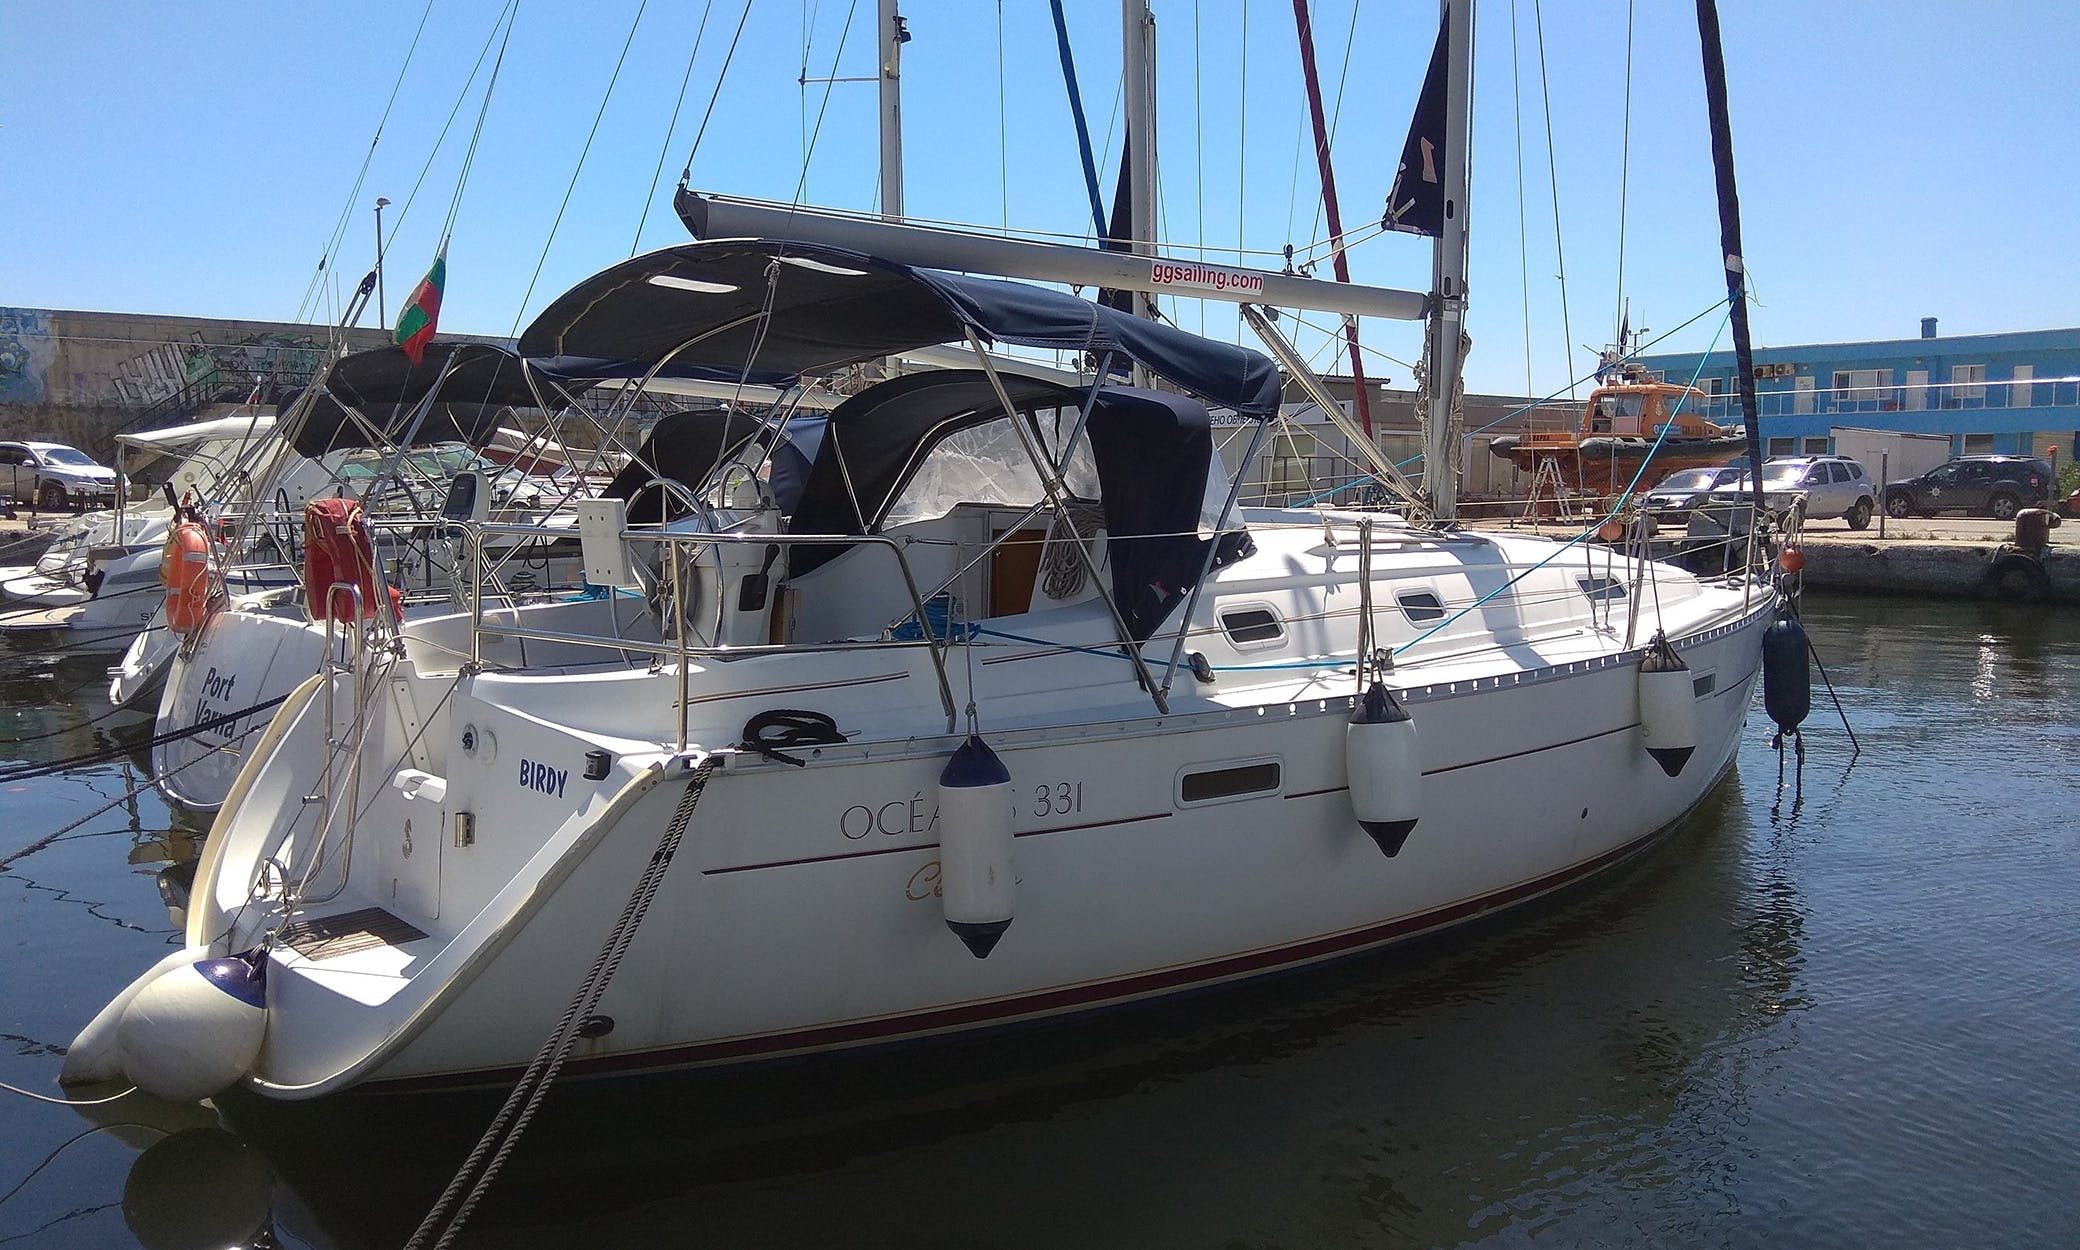 Greatly maintained yacht for a smaller budget